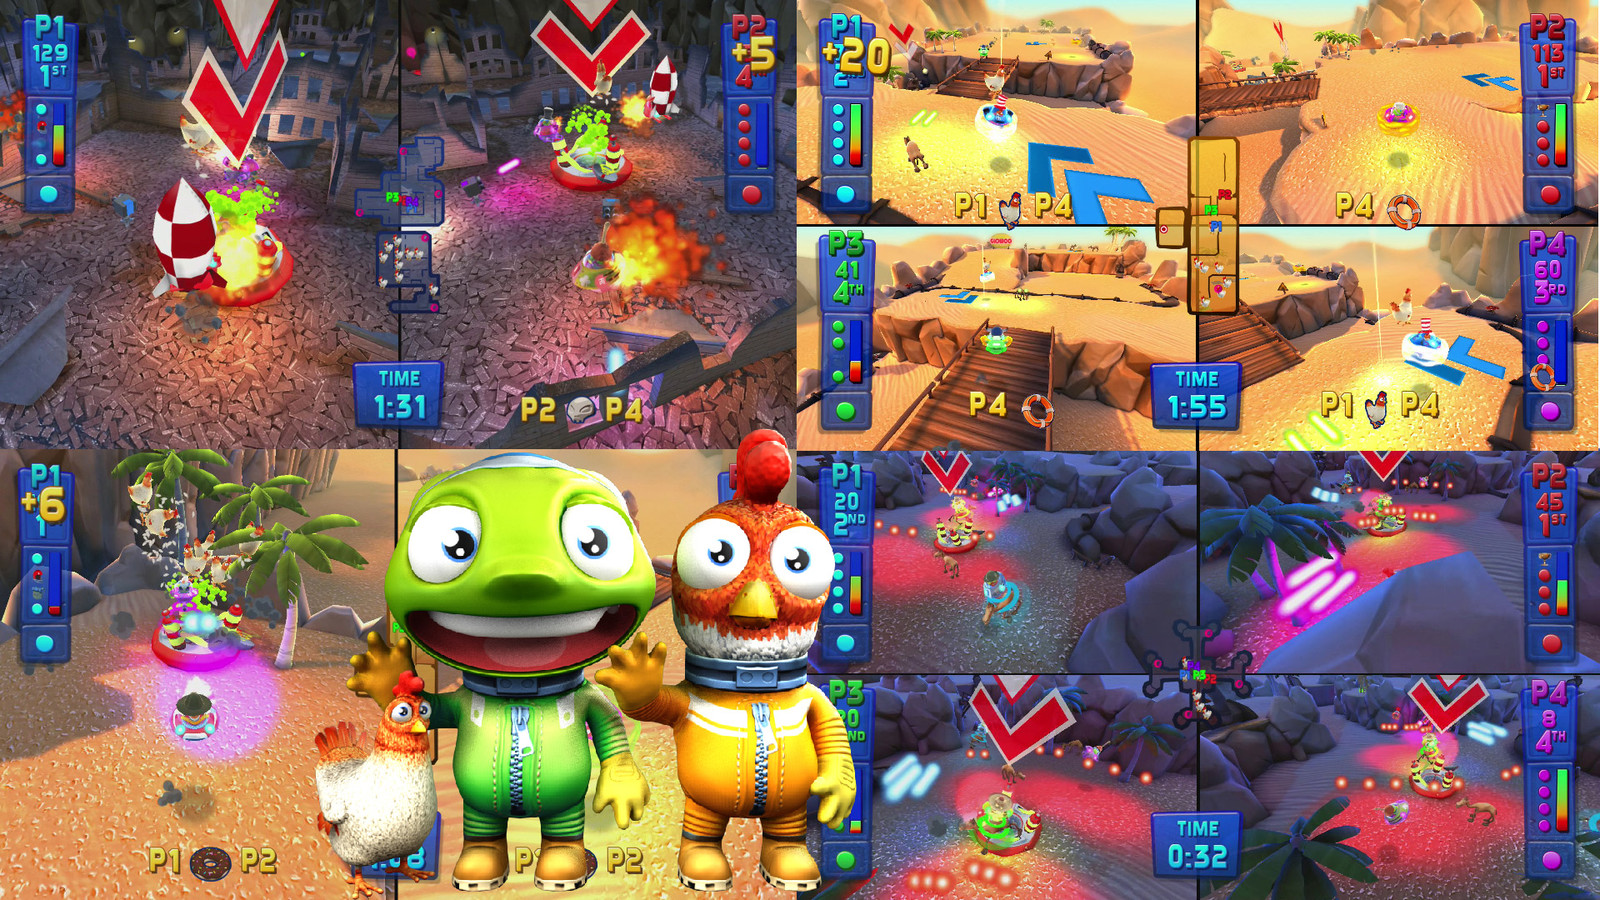 selection of game environments and 2 of the characters